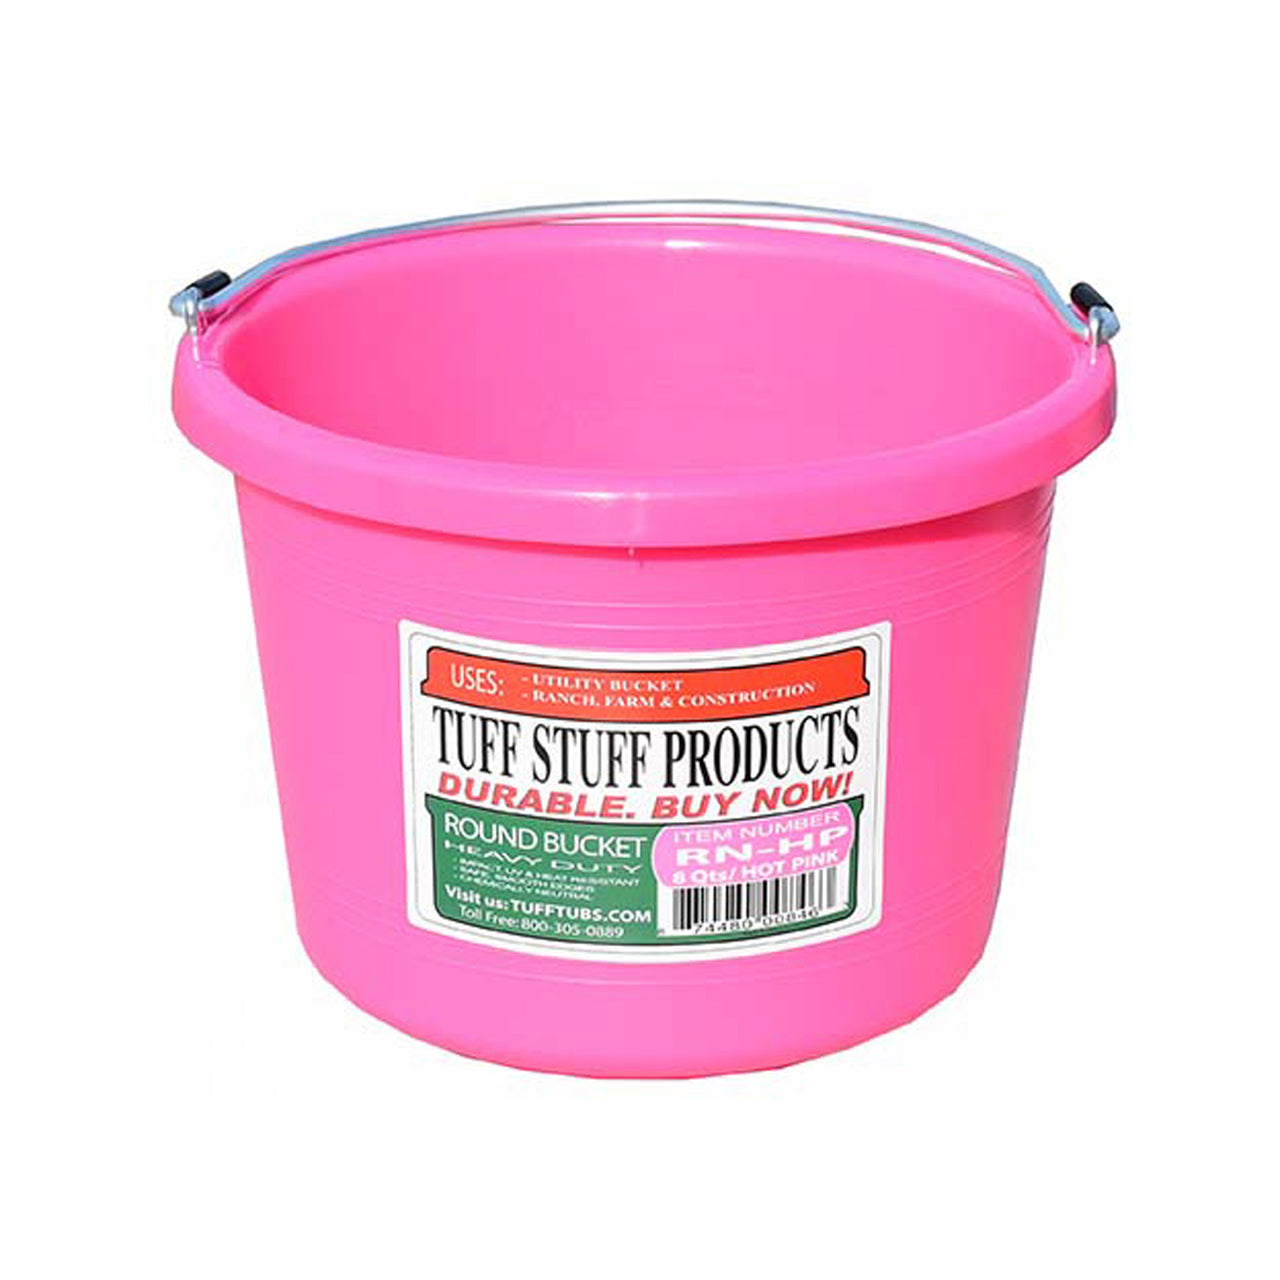 Tuff Stuff Round Bucket 8 Qts - Pink - Buckets Pails Feeders Scoops Tubs Bottles Tuff Stuff - Canada